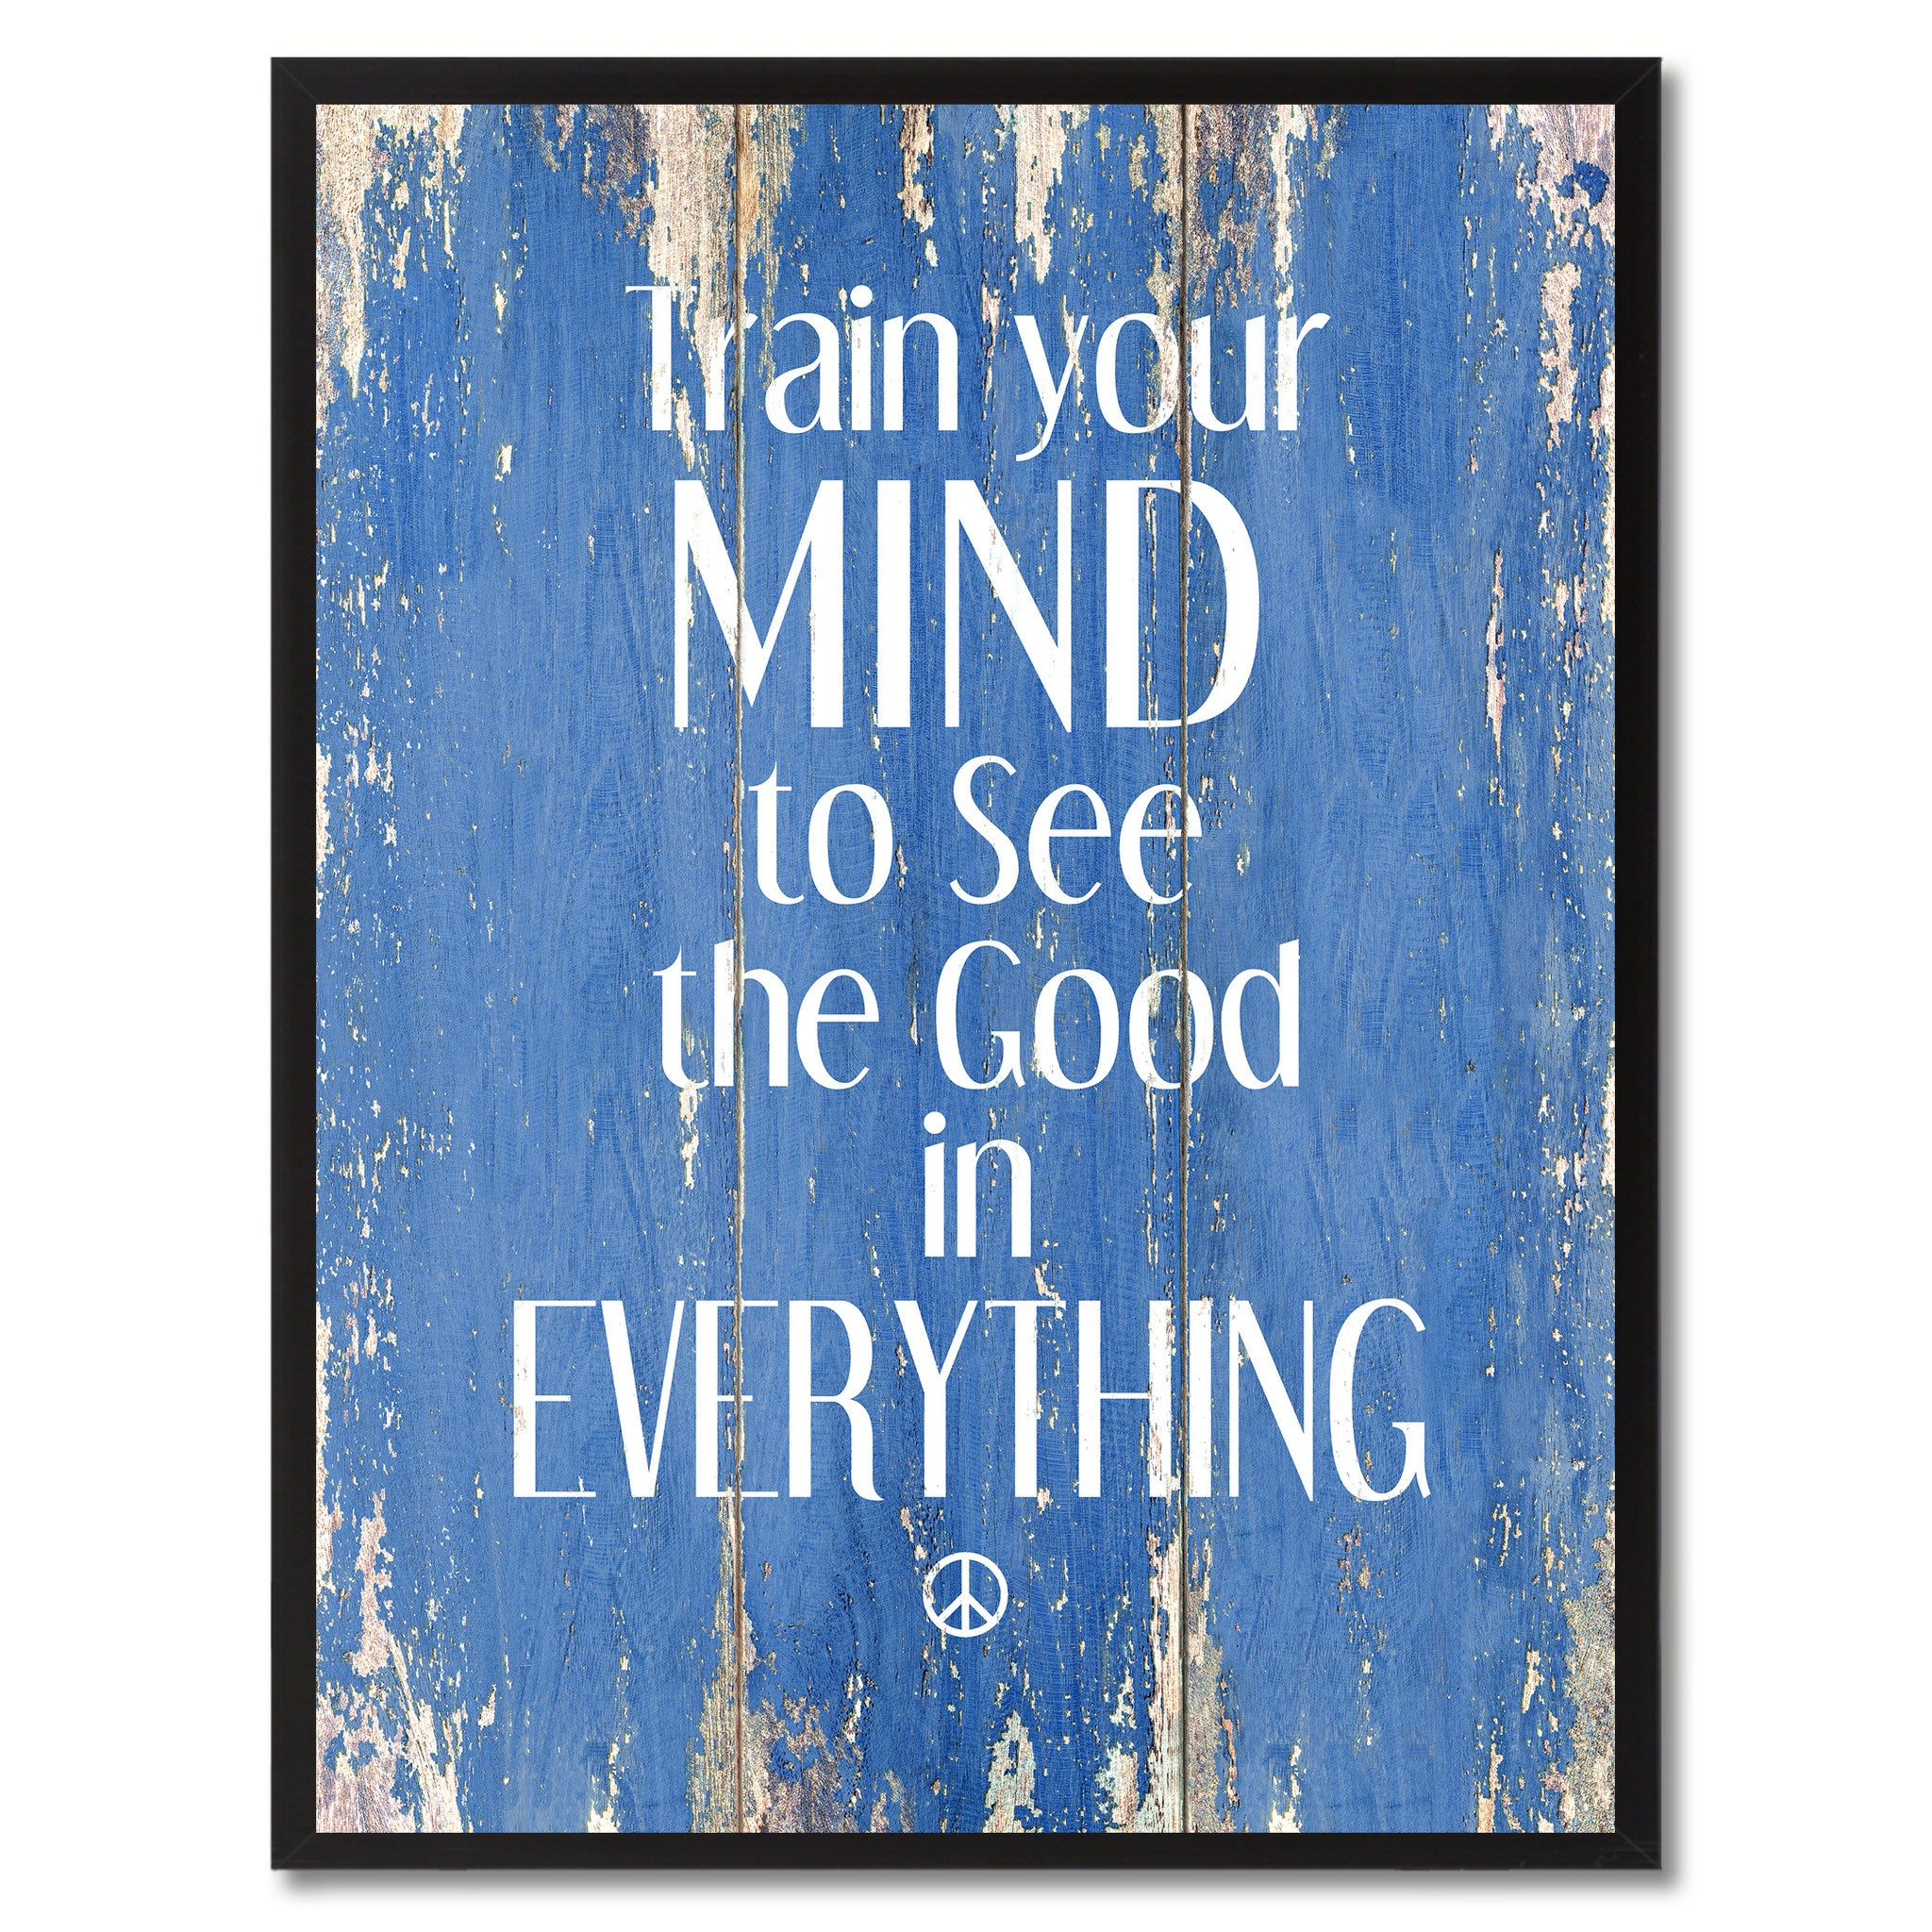 Train your mind to see the good in everything Motivational Quote Saying Canvas Print with Picture Frame Home Decor Wall Art, Blue